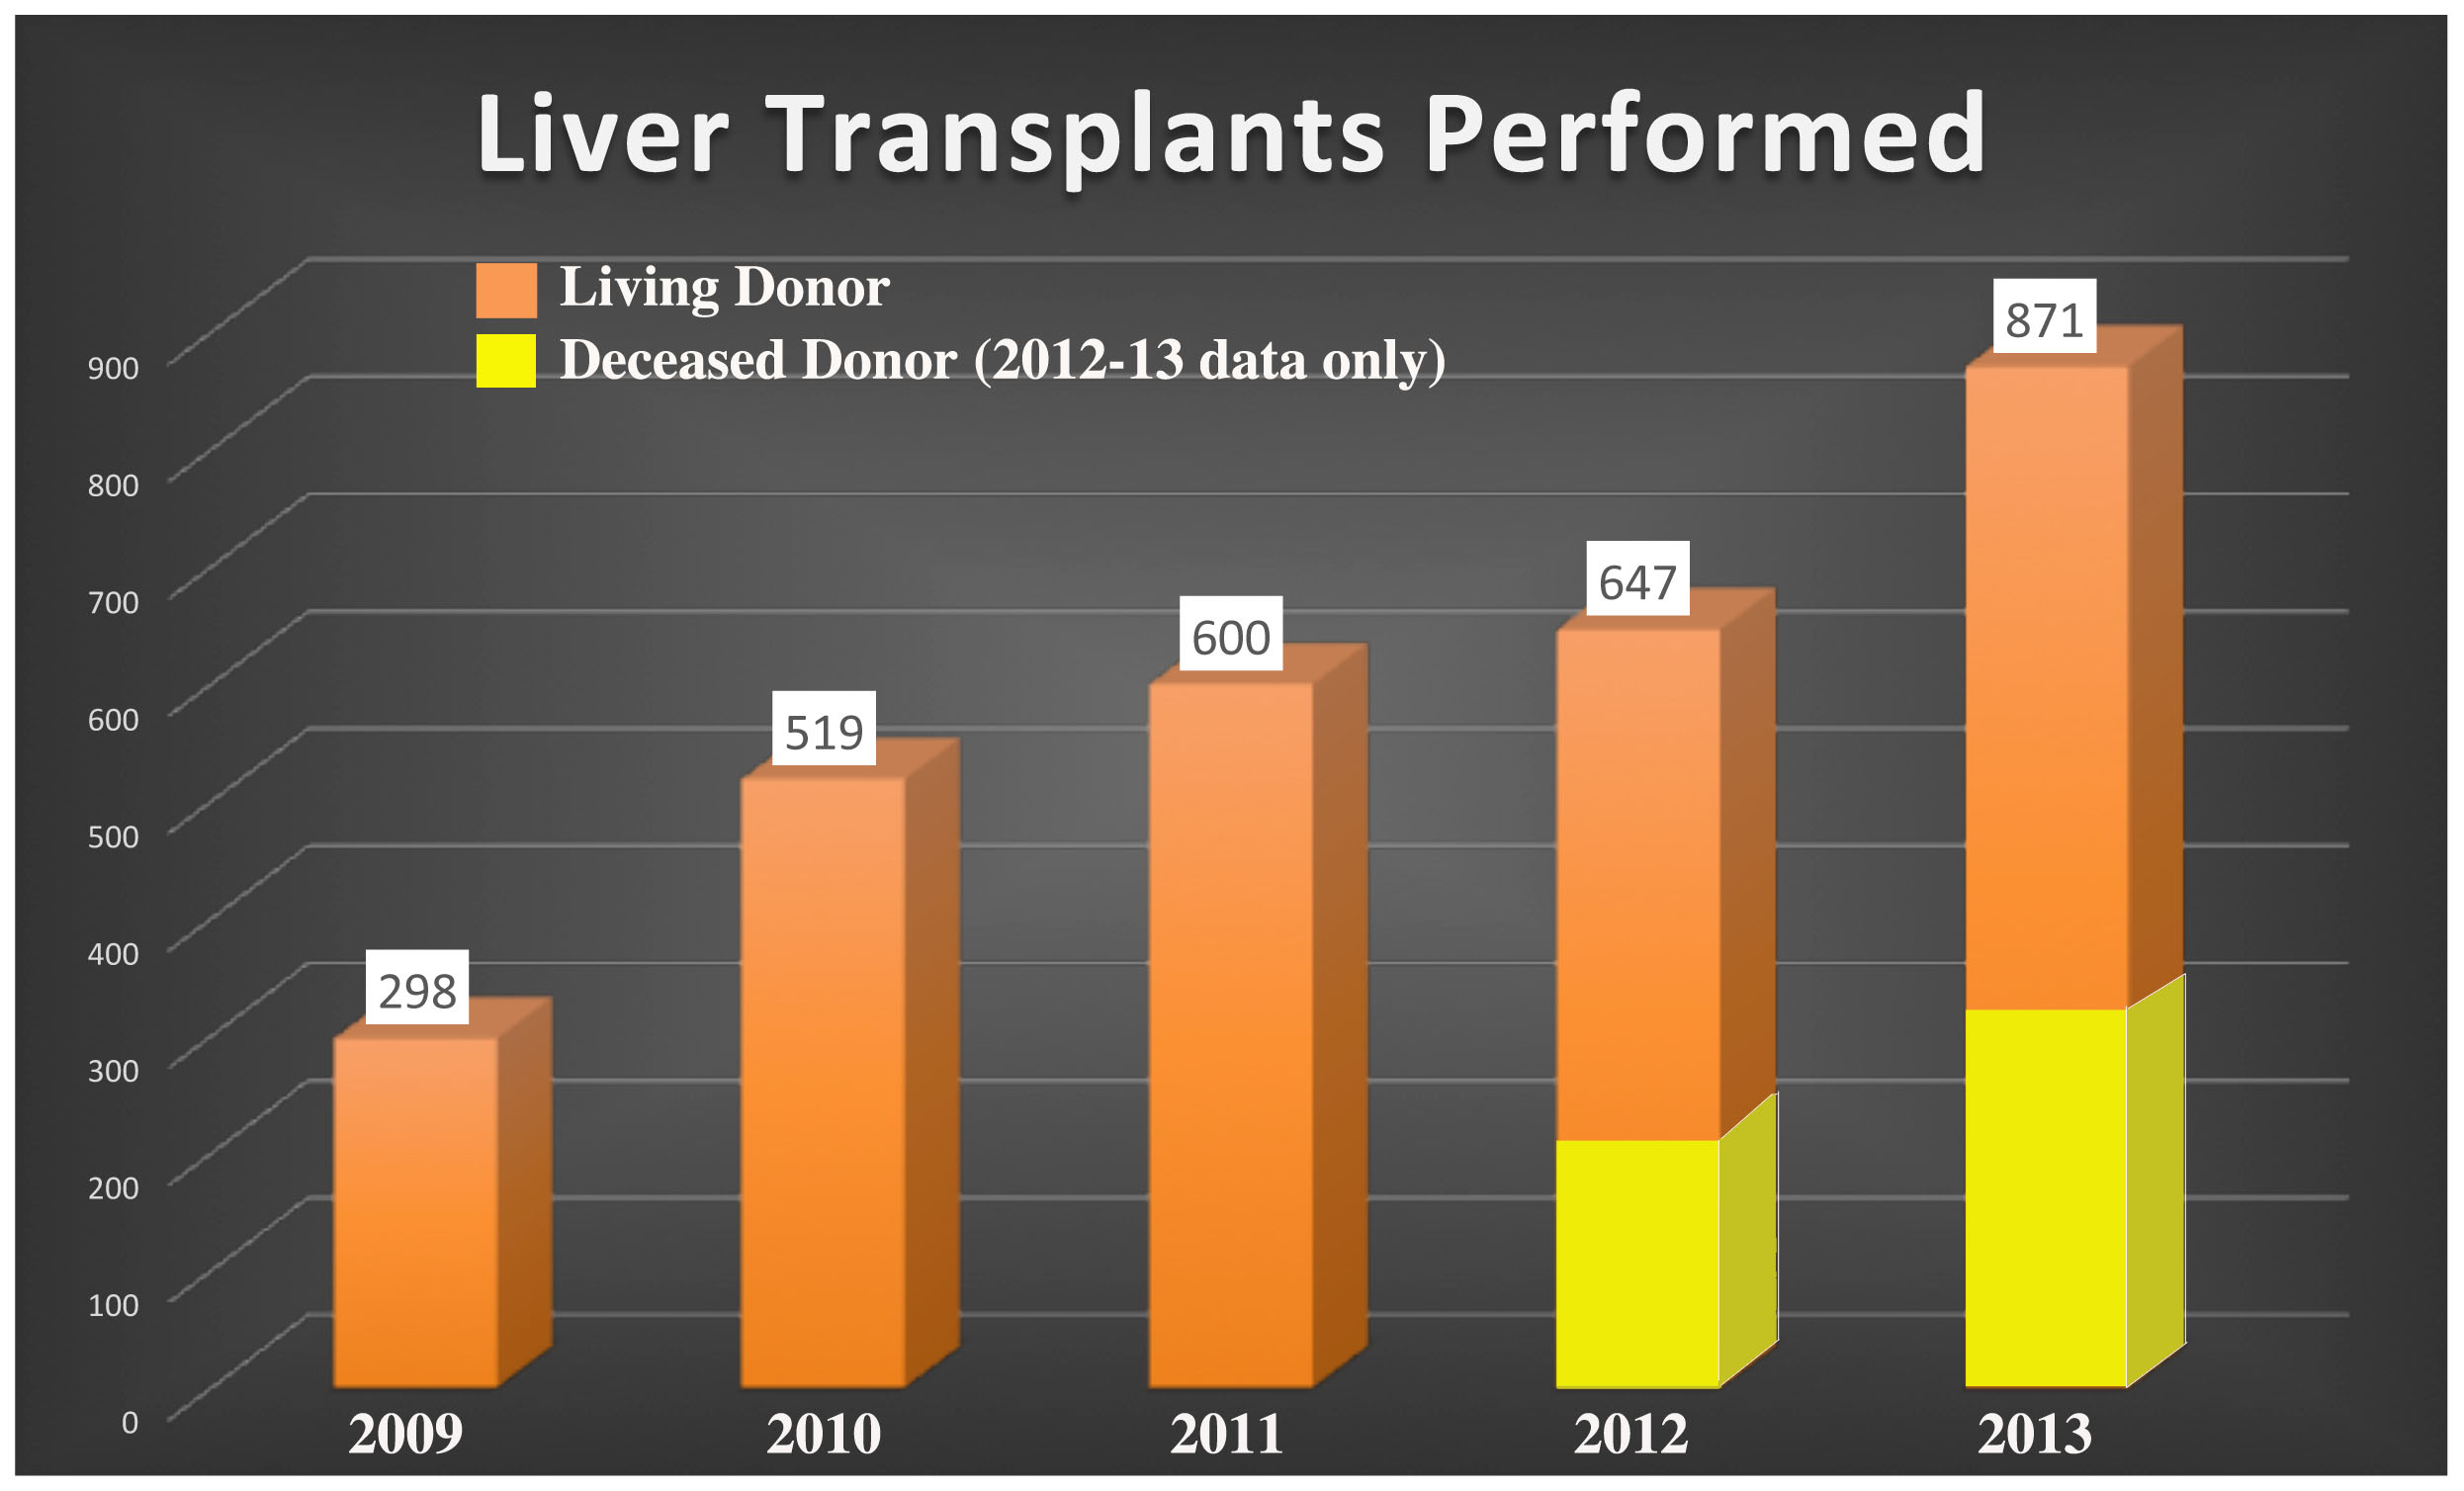 persuasive speech on organ donation after death Presentation donation to save a patient's life after death has been legally and medically persuasive speech organ donation.